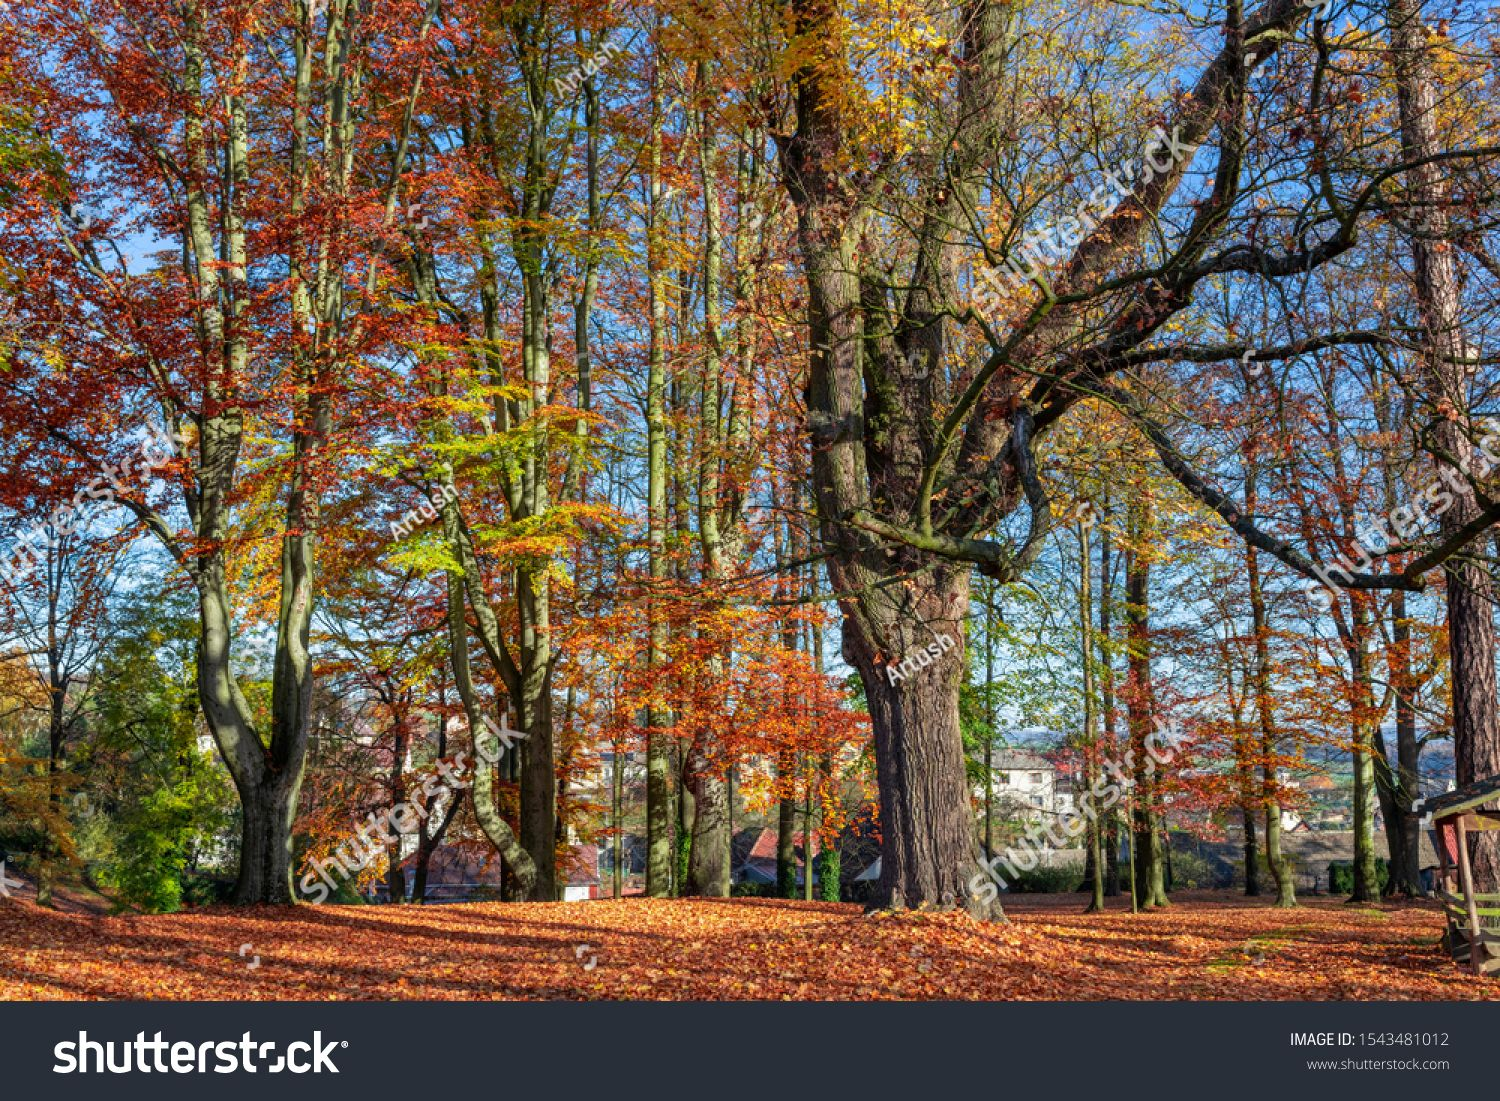 Romantic fall colored park with trees and morning sunlight. Autumn season natural background. Fall concept in park. Vivid colorful natural scene. Europe #Ad , #Aff, #morning#trees#Autumn#sunlight